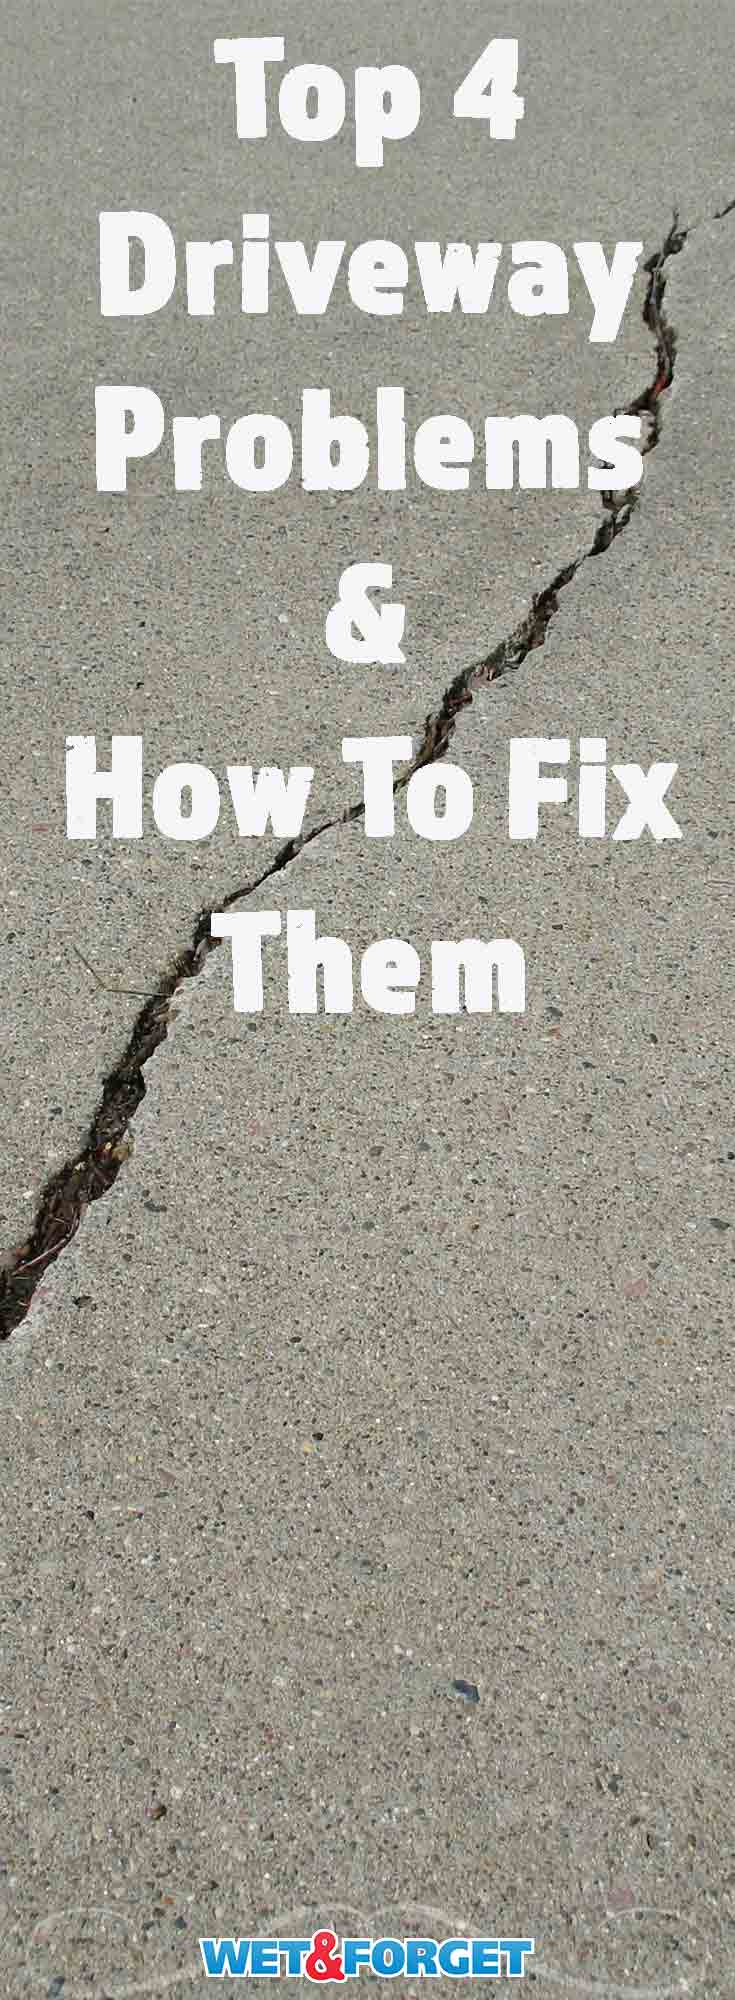 Many driveway problems can be fixed easily! Read up on the top 4 driveway problems and follow these simple solutions to repair your drive.